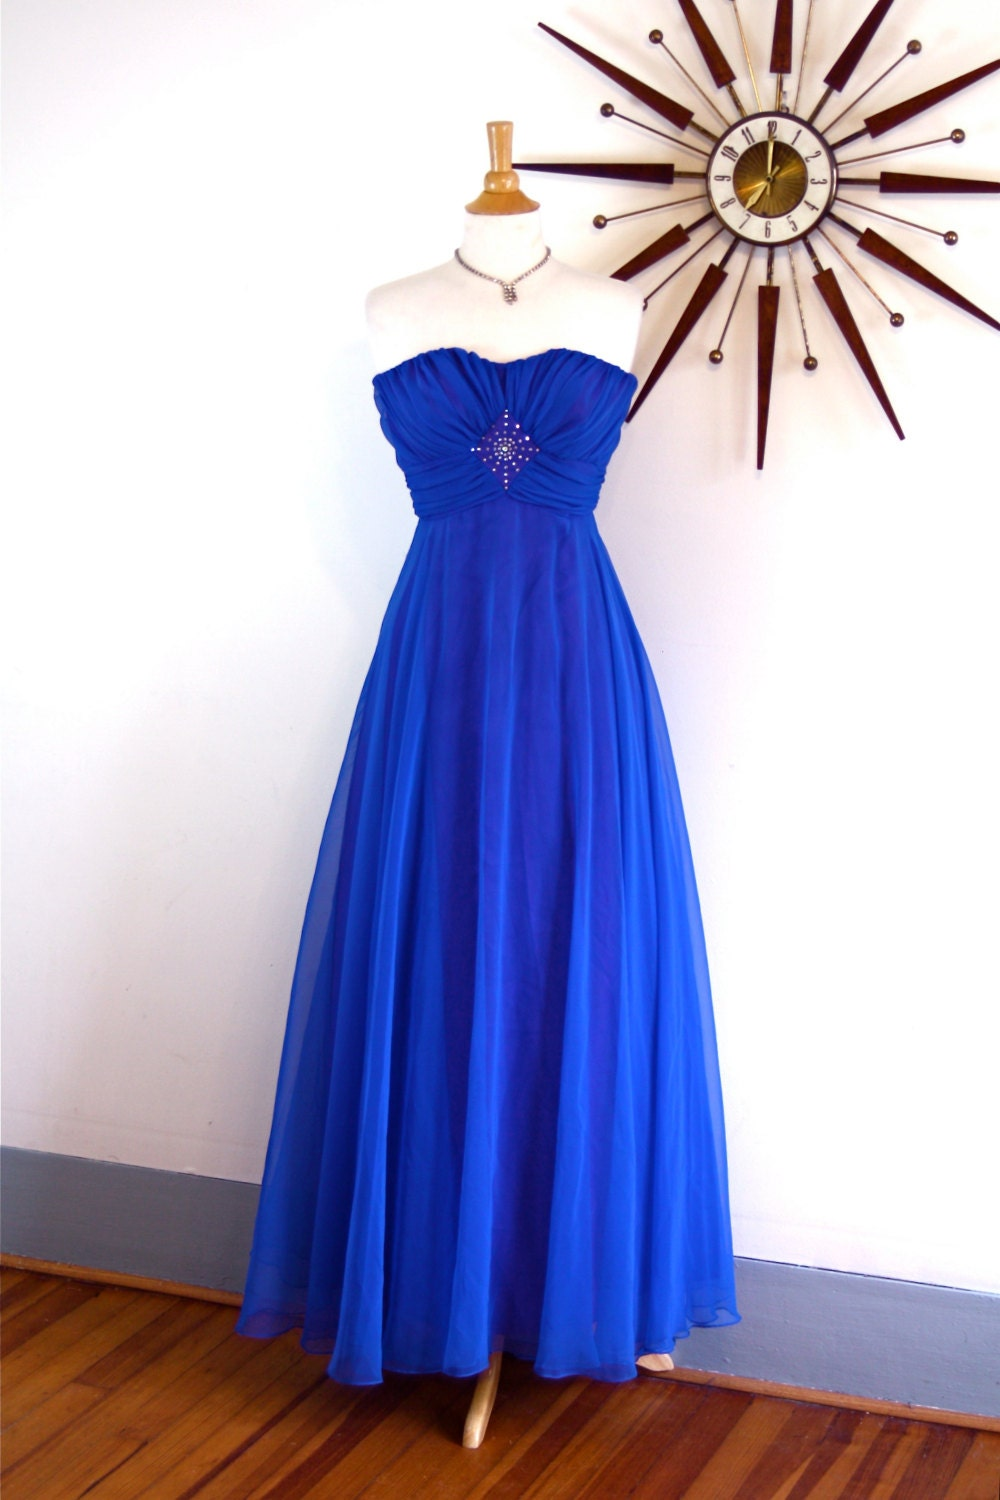 36396dbe8d1 Vintage 60s Royal Blue Chiffon Maxi Dress Cocktail Party Strapless ...